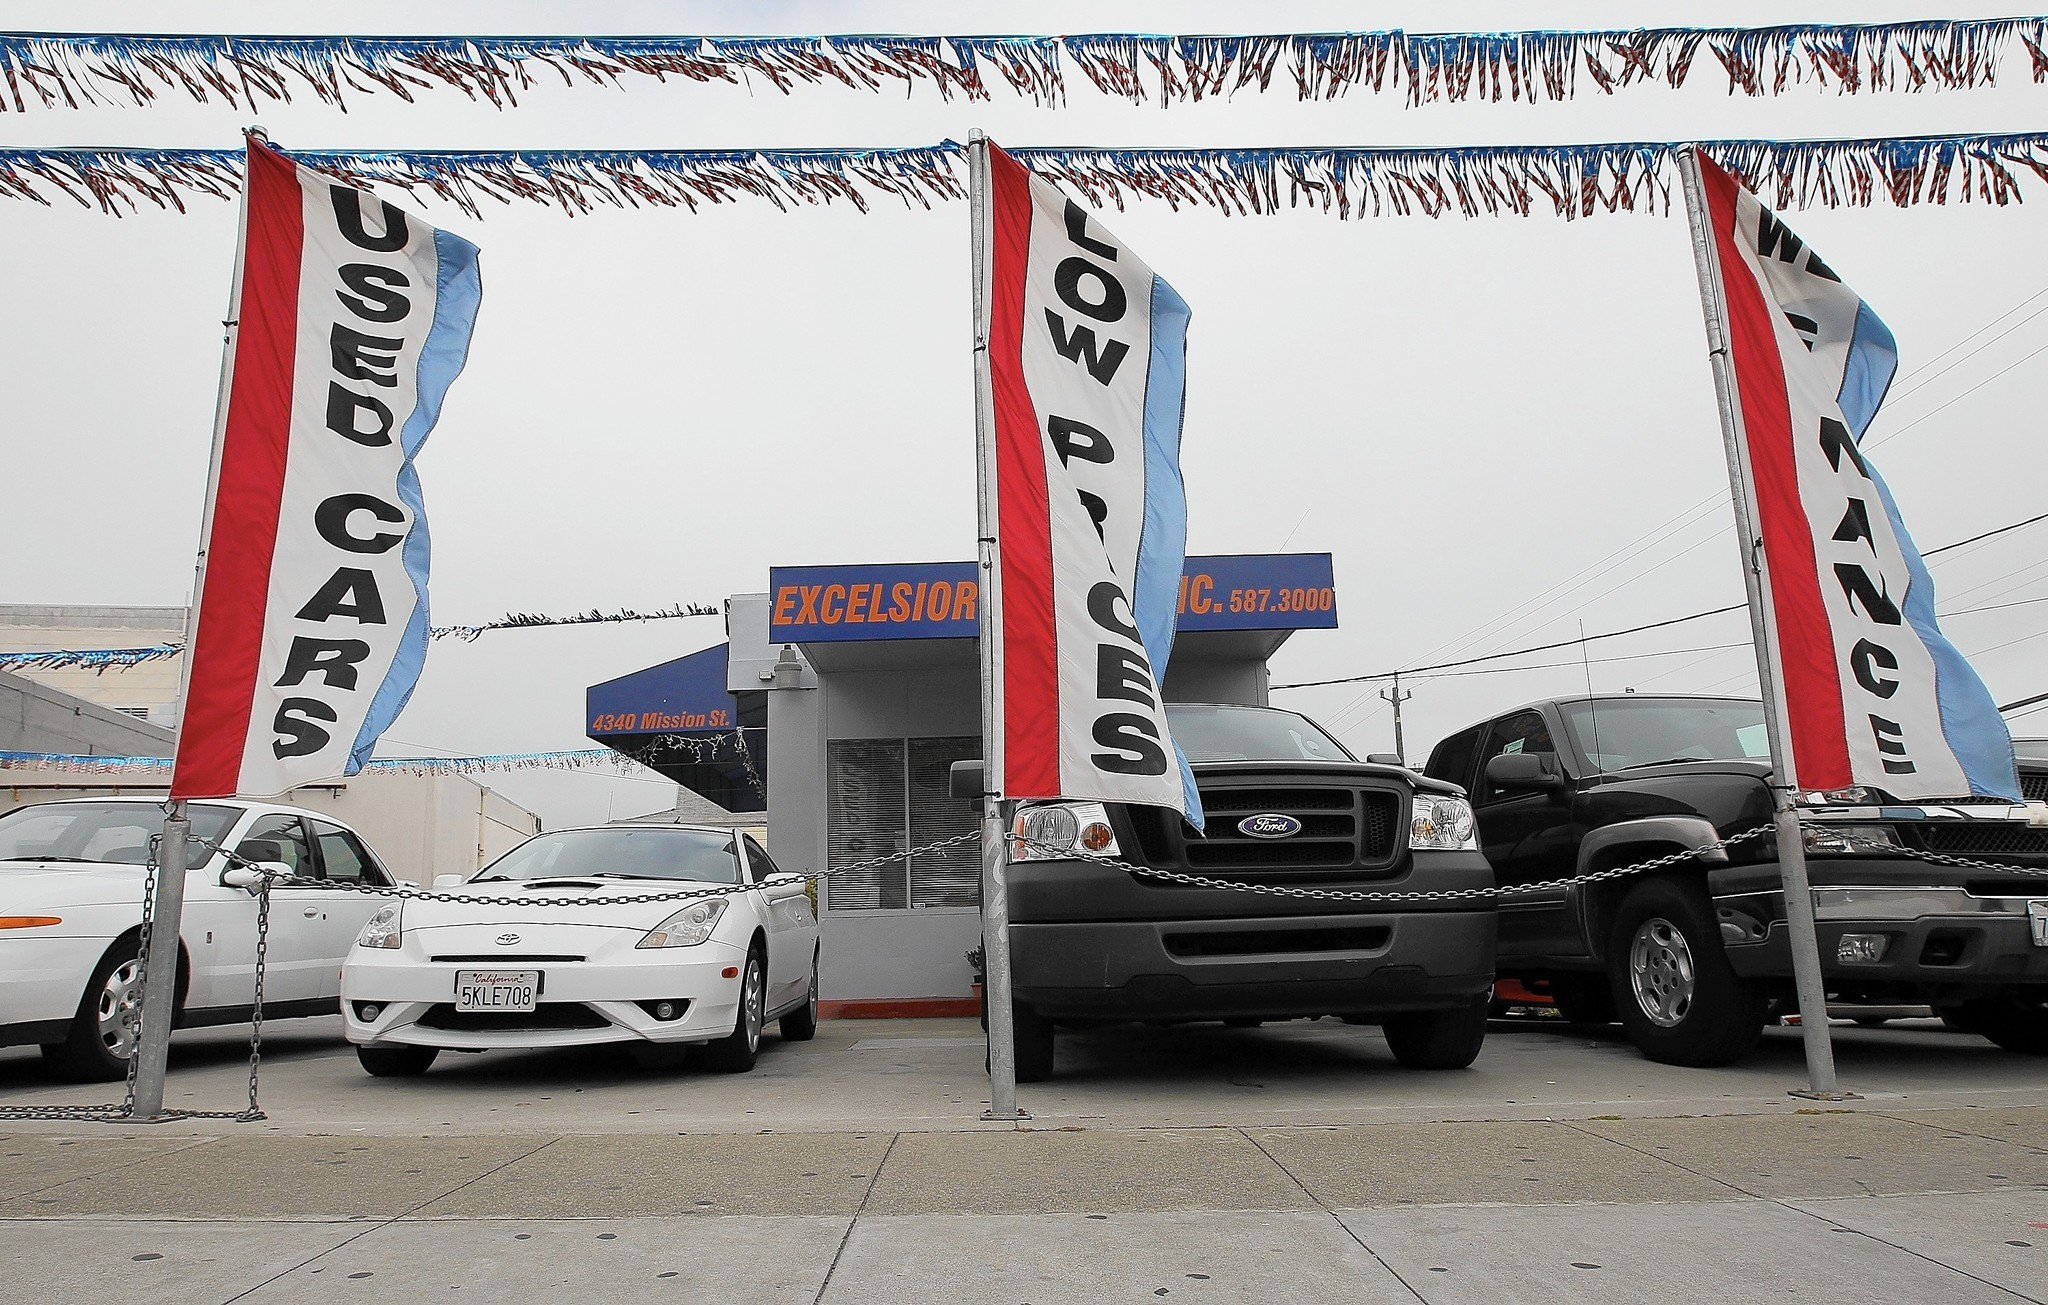 Used Car Price Drop Makes It A Good Time To Buy